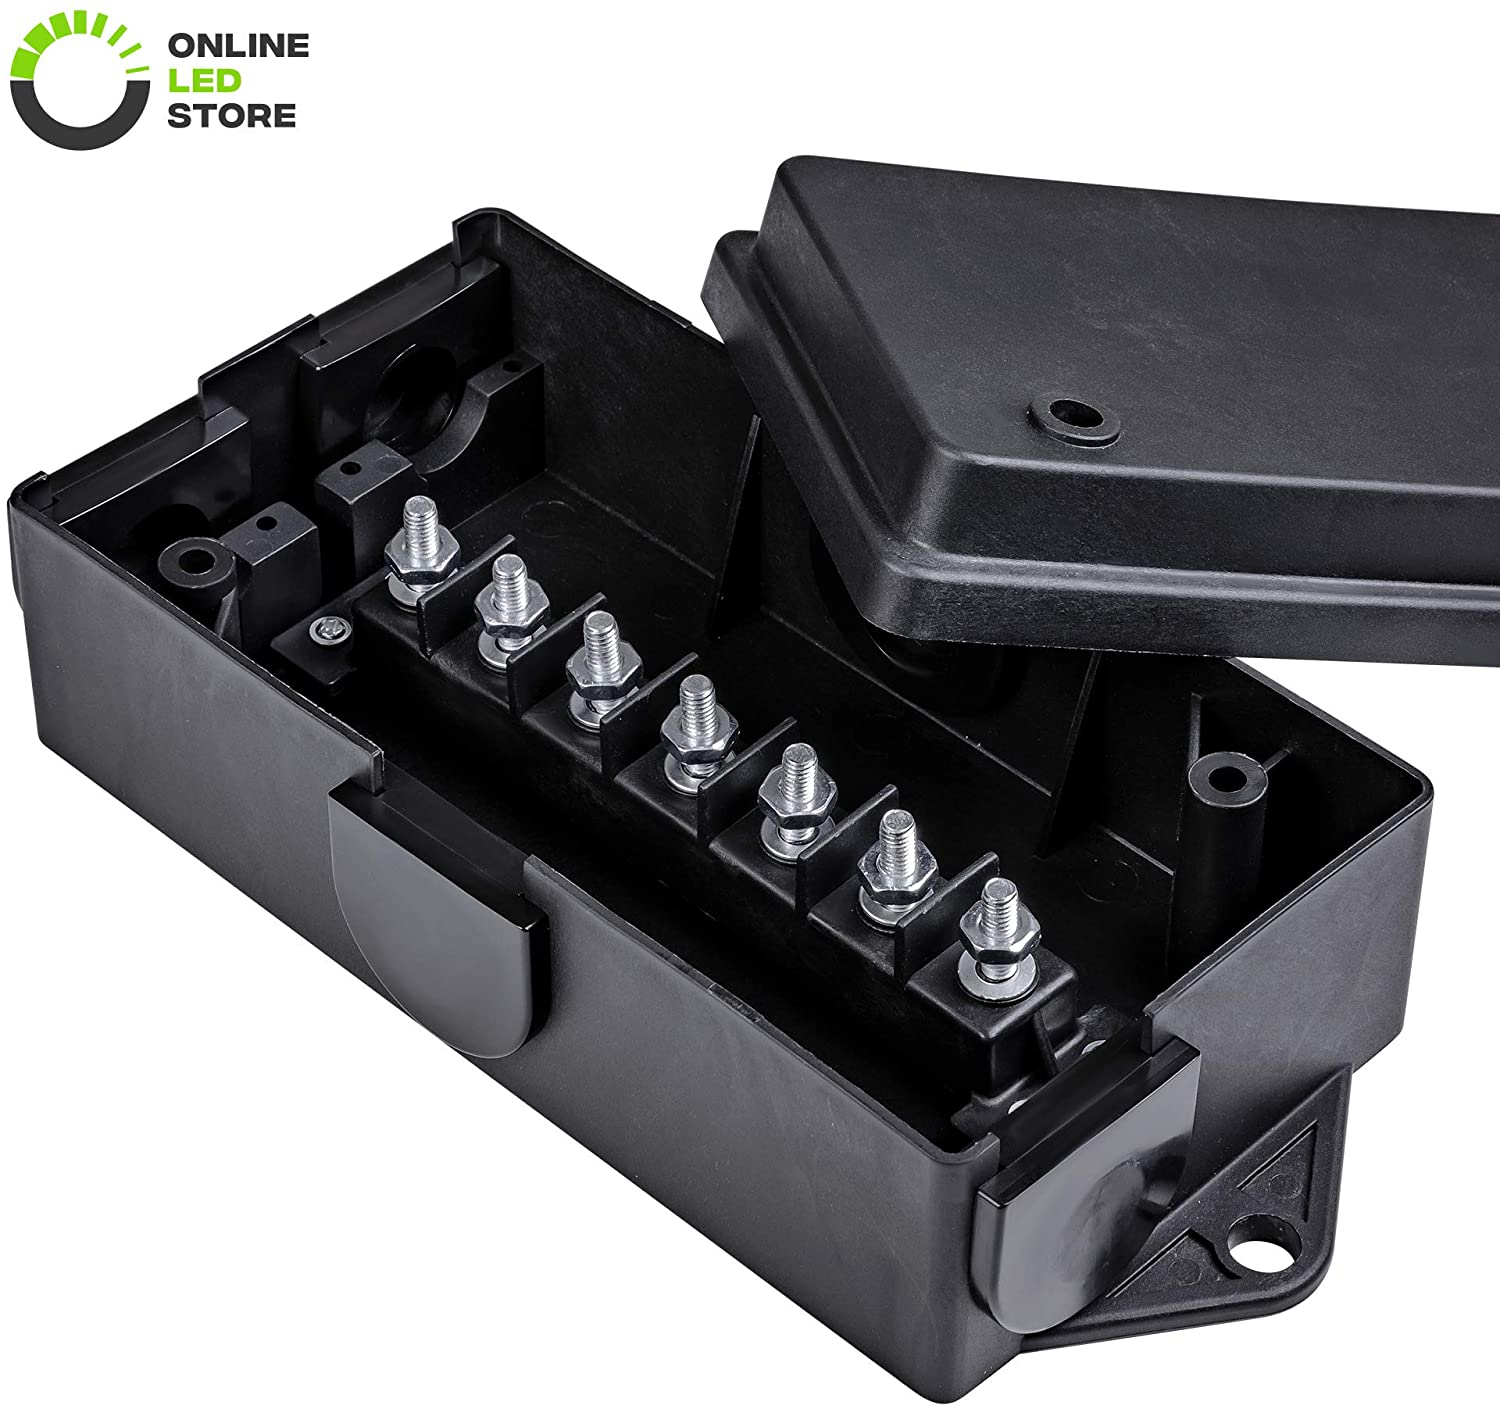 ONLINE LED STORE 7-Gang Electrical Junction Box for Trailer Wiring [Steel Studs] [Solid Build] [Waterproof] 7 Way Trailer Wire/Cable/Cord Connection Box for RV Trailer Light Camper Rewiring